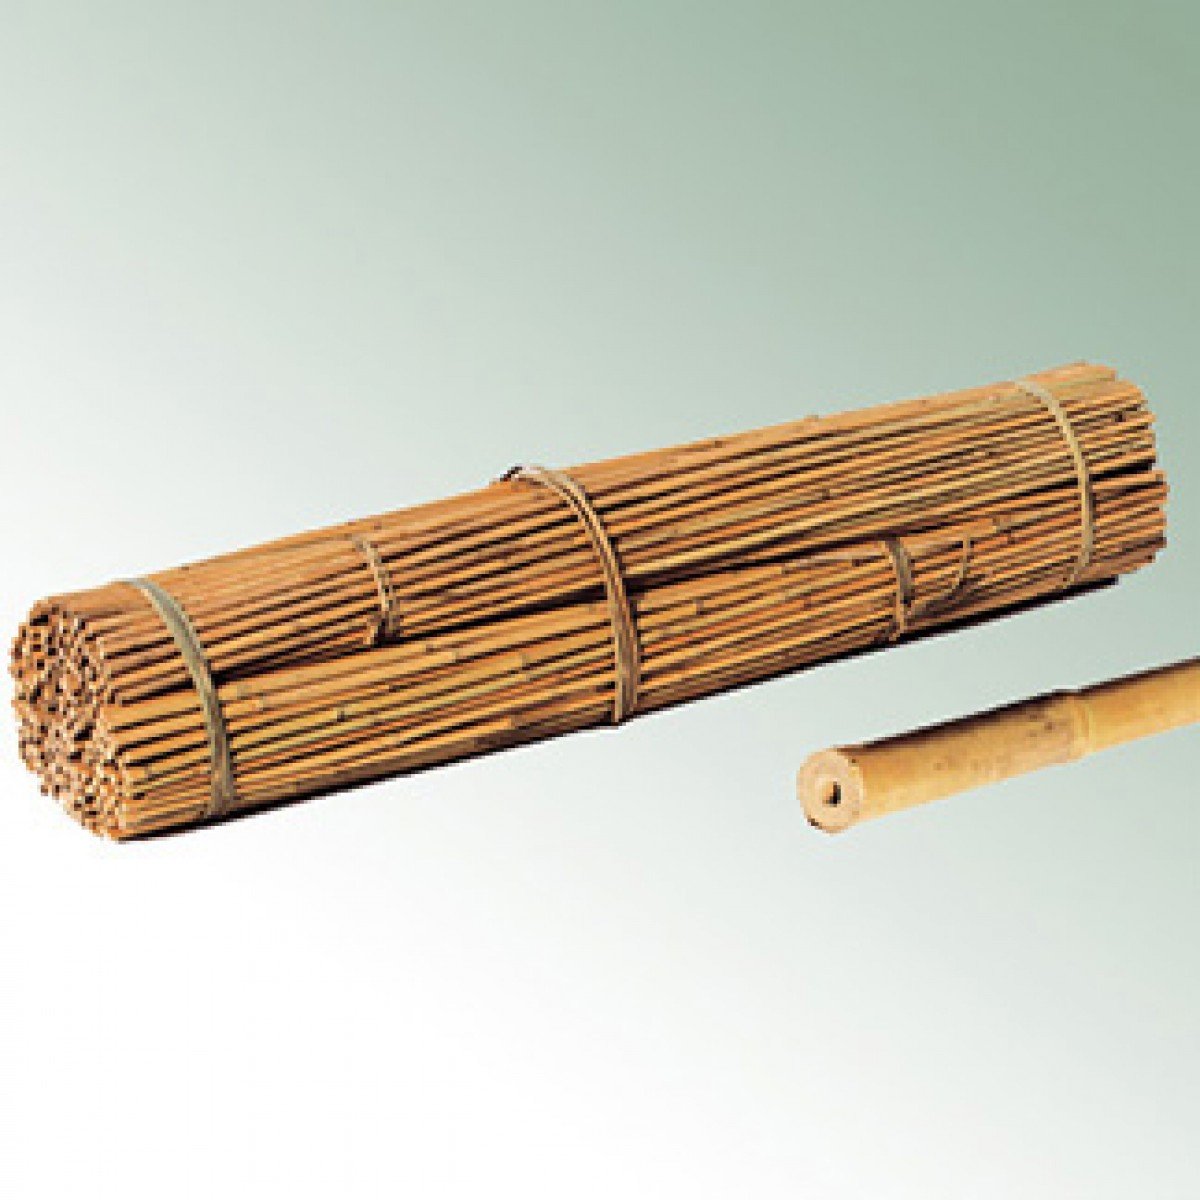 Bamboo canes 91cm 8 10 3 39 bale 1000 units stakes for Uses for bamboo canes